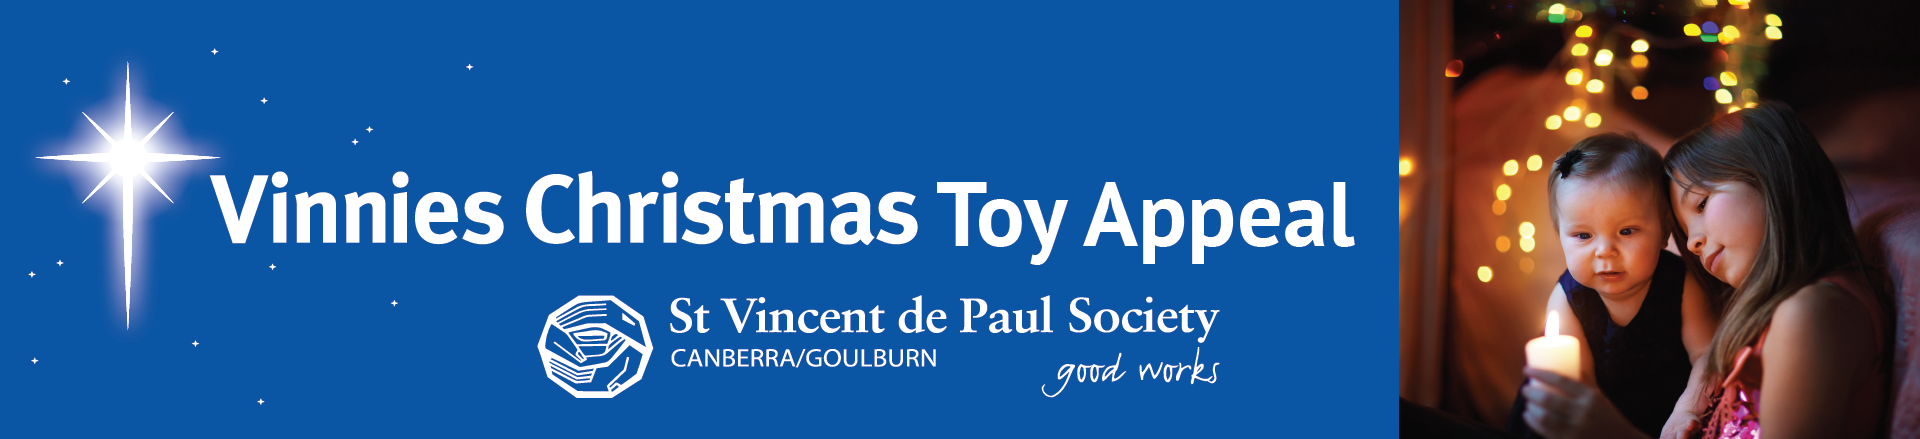 - Vinnies Christmas Gift Appeal - Canberra/Goulburn